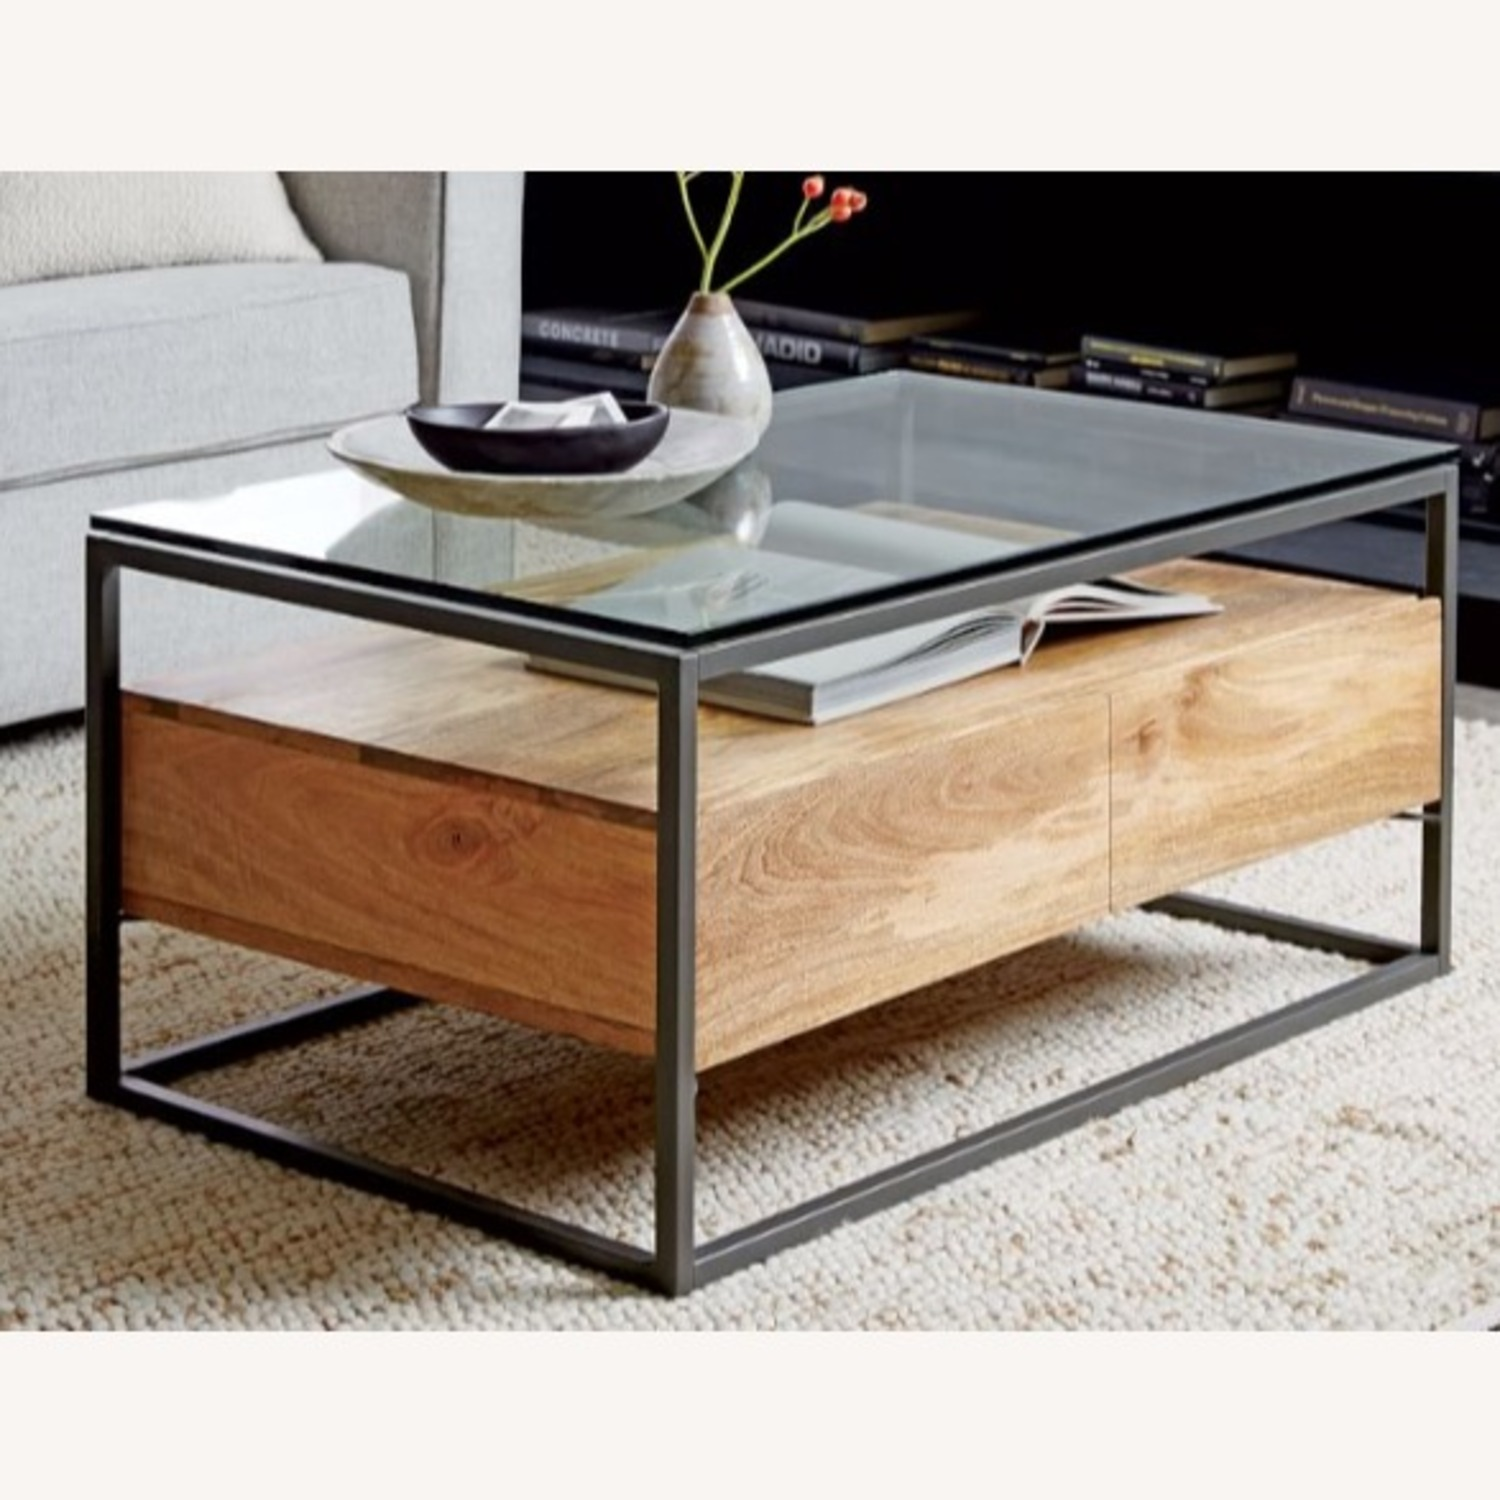 West Elm Box Frame Storage Coffee Table, Raw Mango, Large - image-2